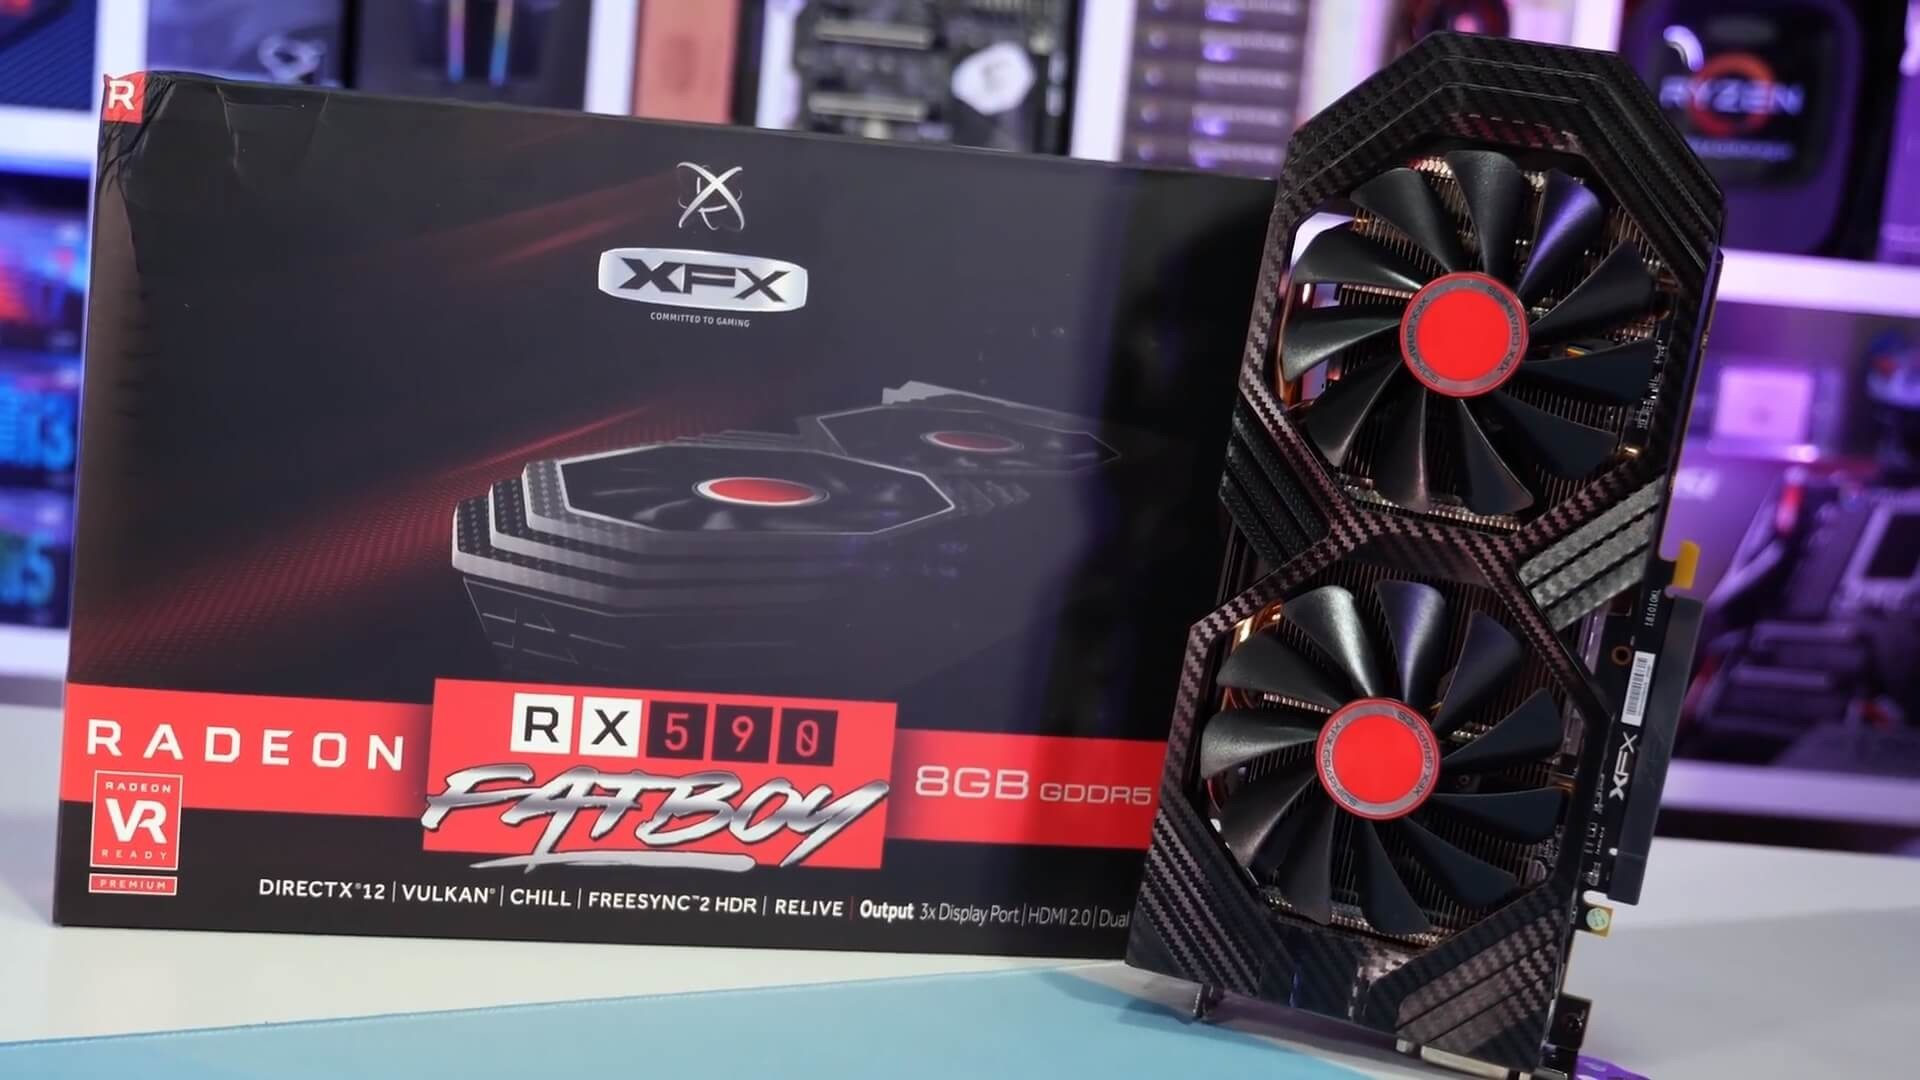 1920x1080 Then there's the higher-end models like the Gigabyte Aorus RX 580 XTR,  which we use for testing, and that particular model comes clocked at 1425  MHz, ...